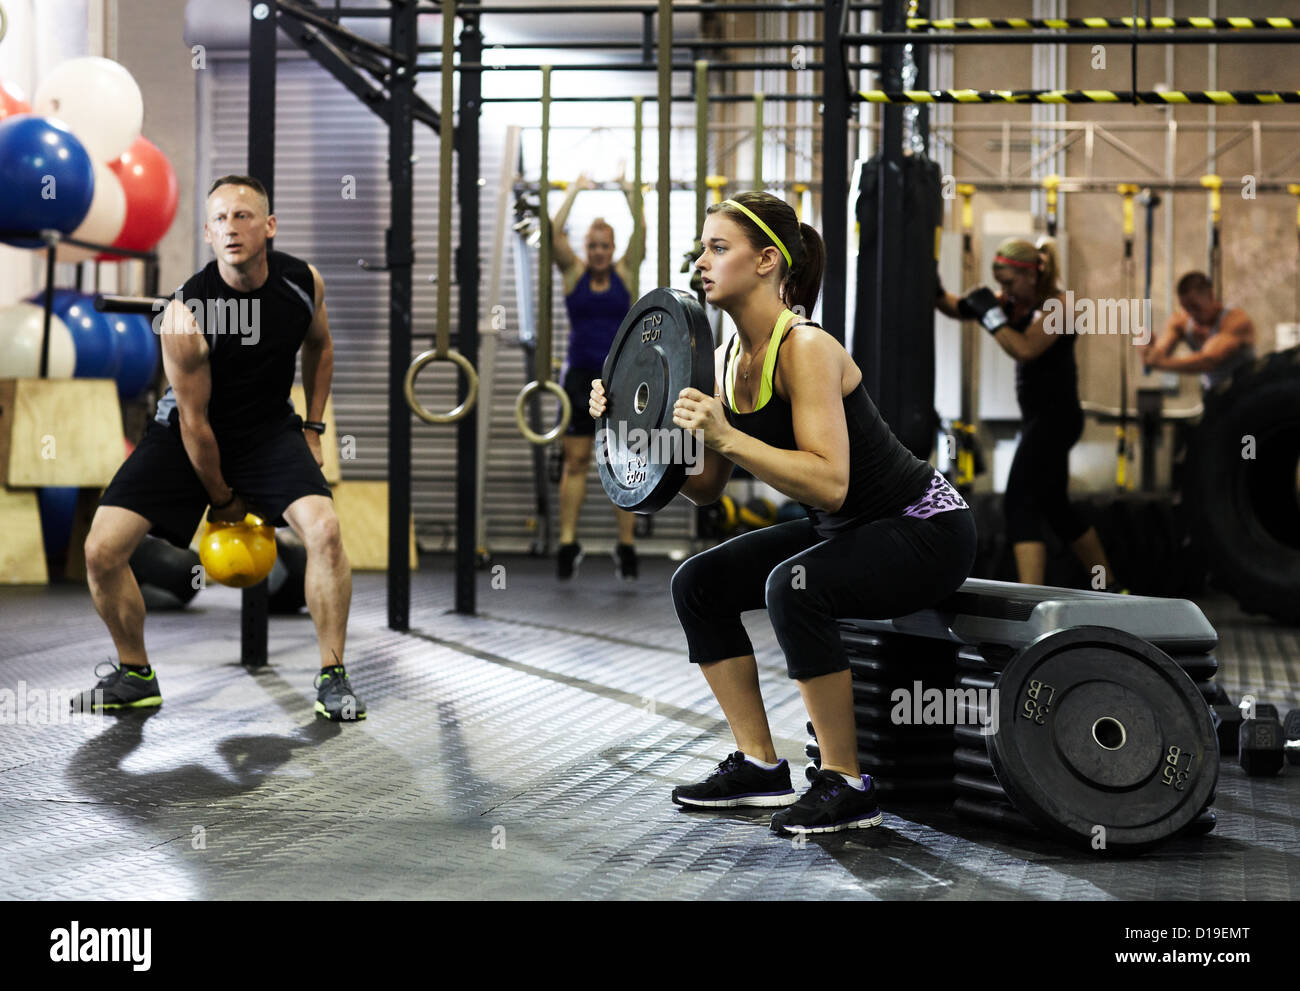 People circuit training in gym stock photo royalty free for Gimnasio 19